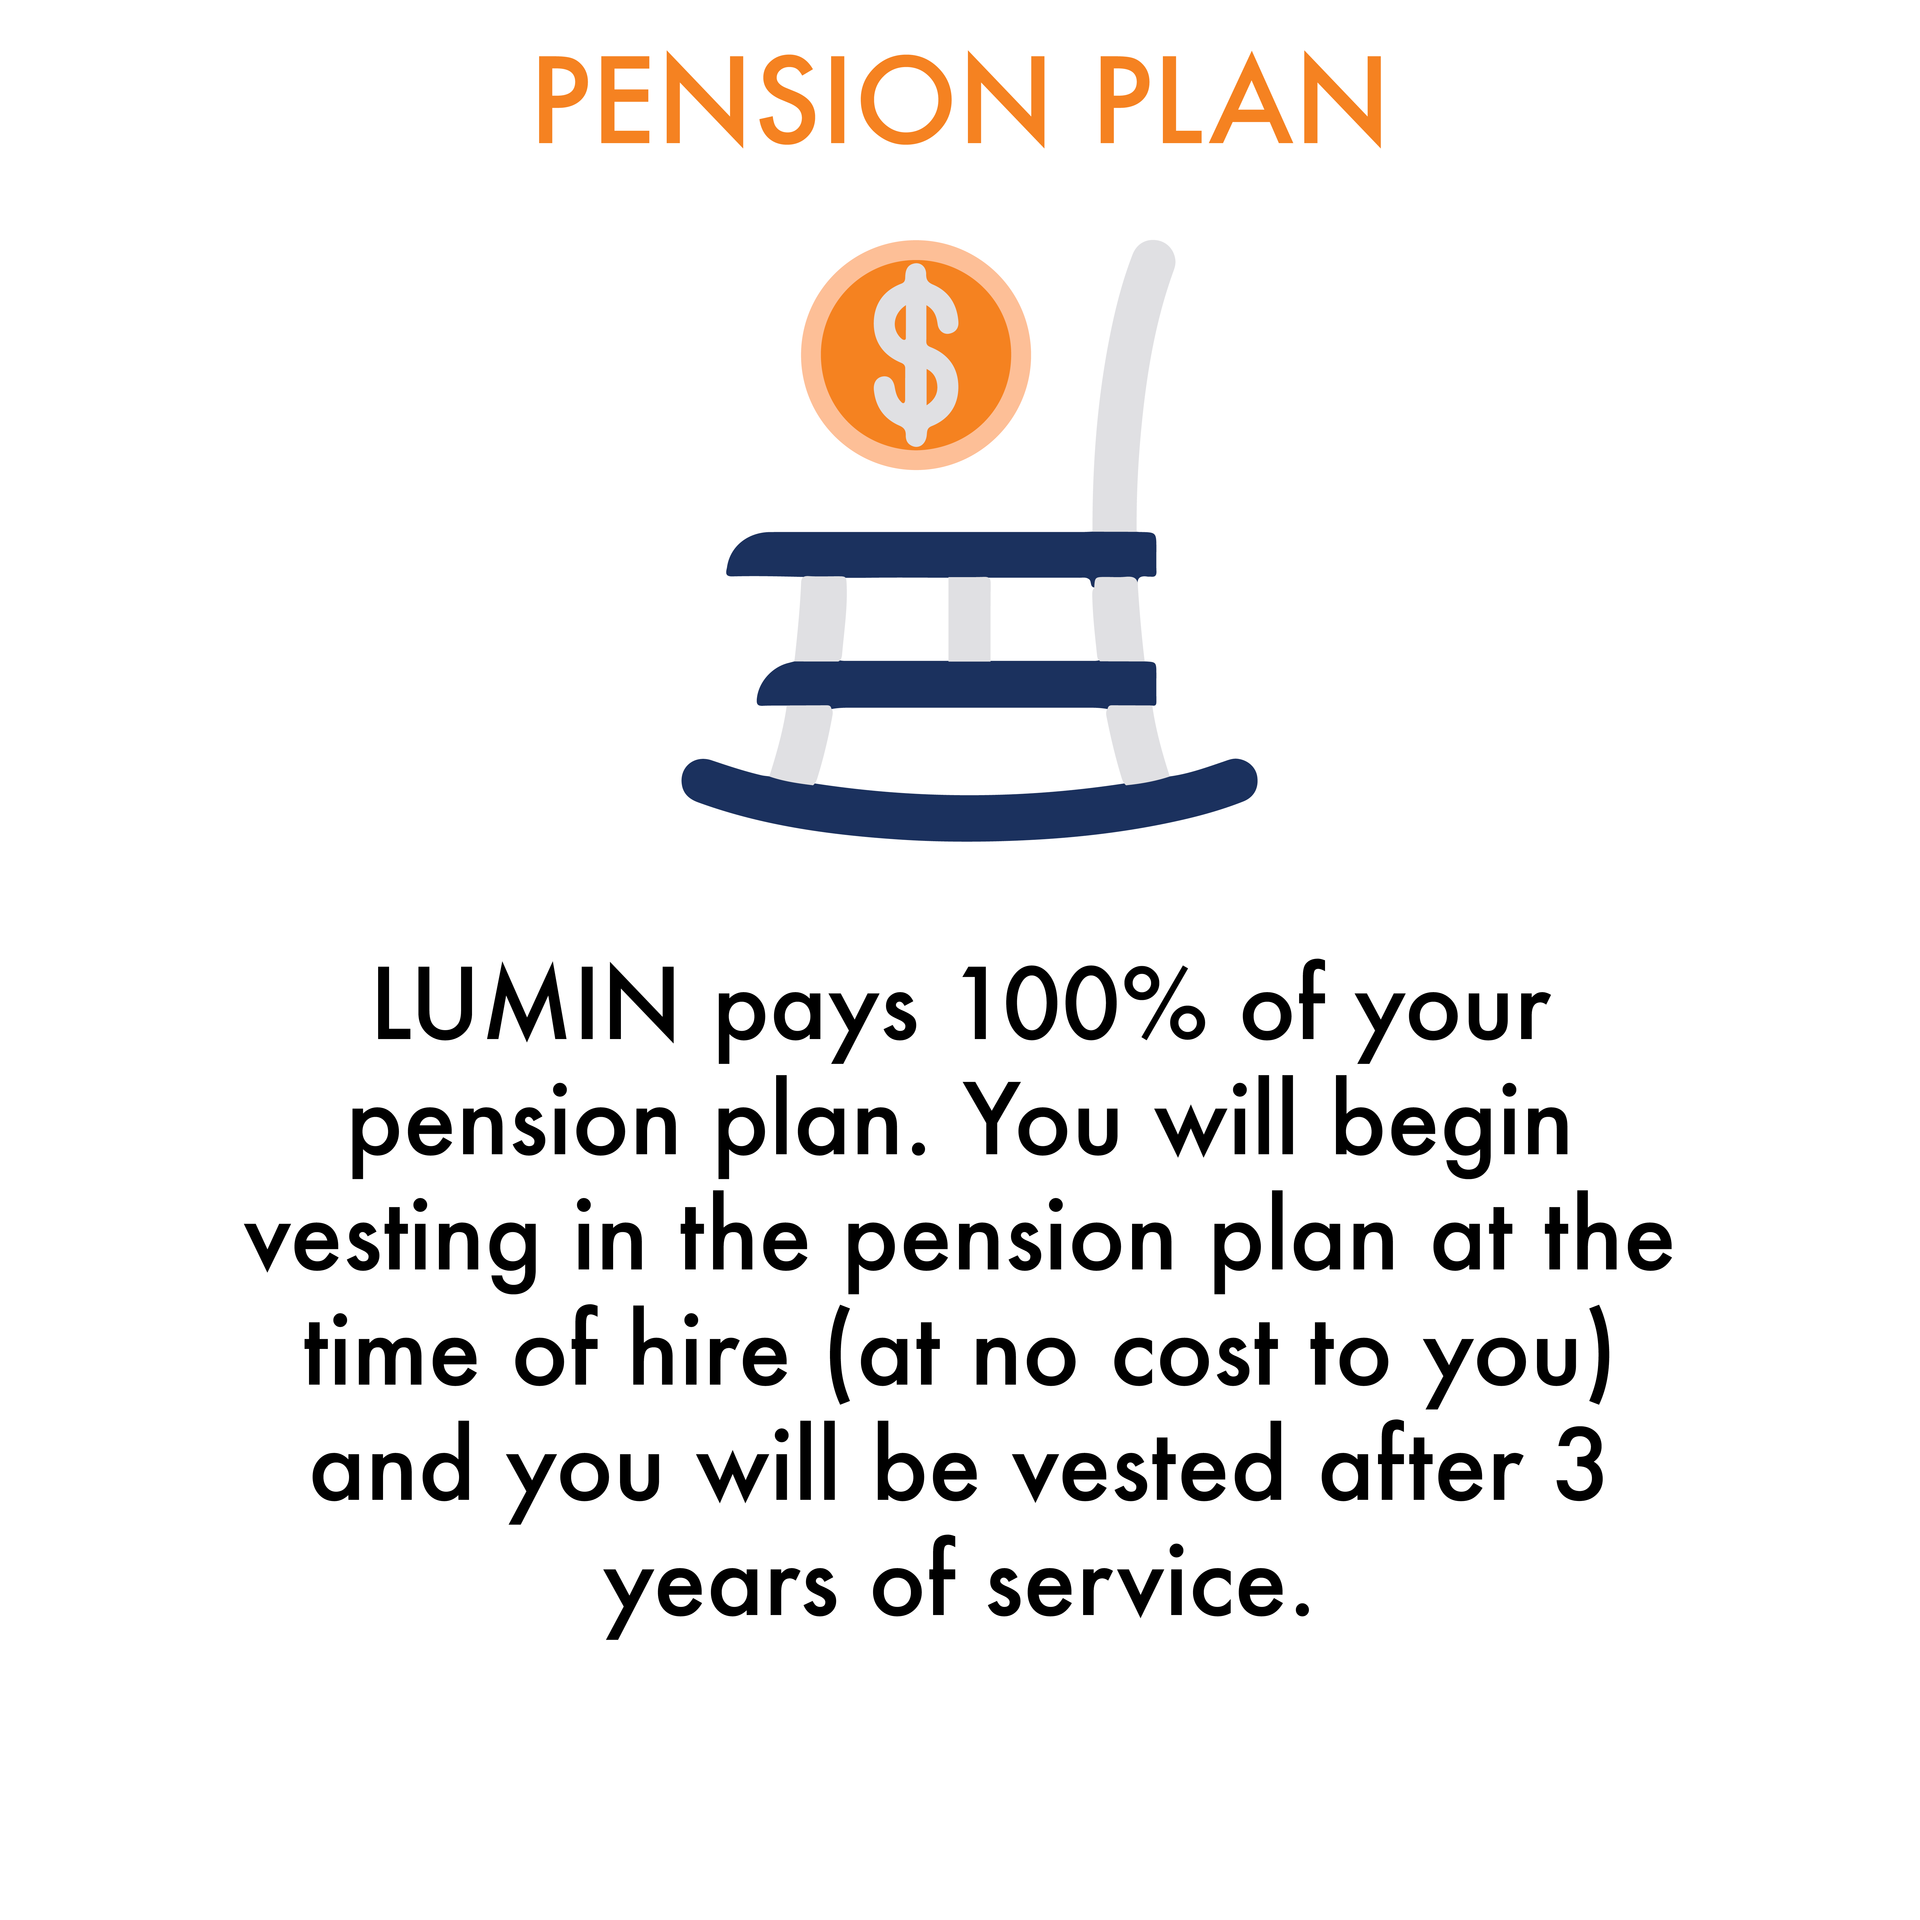 Pension Plan: LUMIN pays 100% of your pension plan. You will begin vesting in the pension plan at the time of hire (at no cost to you) and you will be vested after 3 years of service.